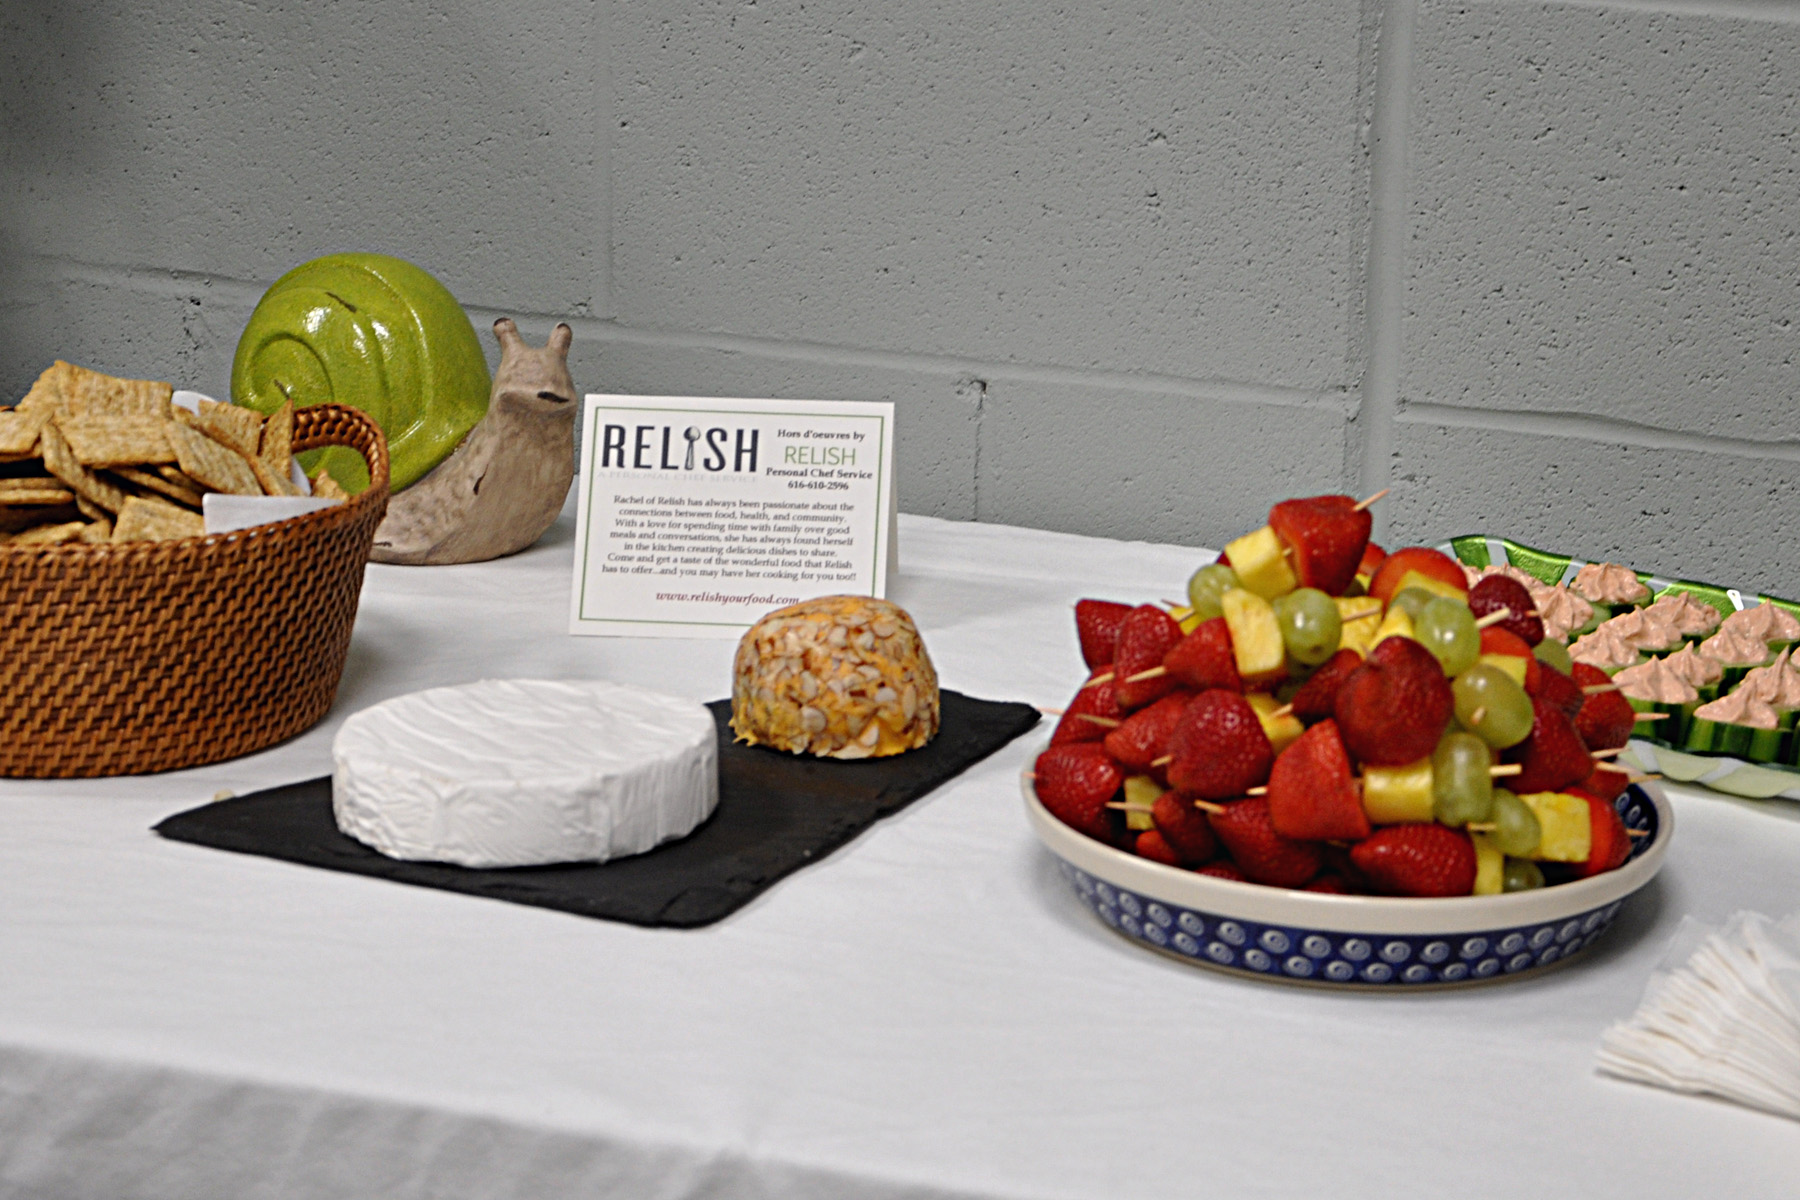 Catering by Relish